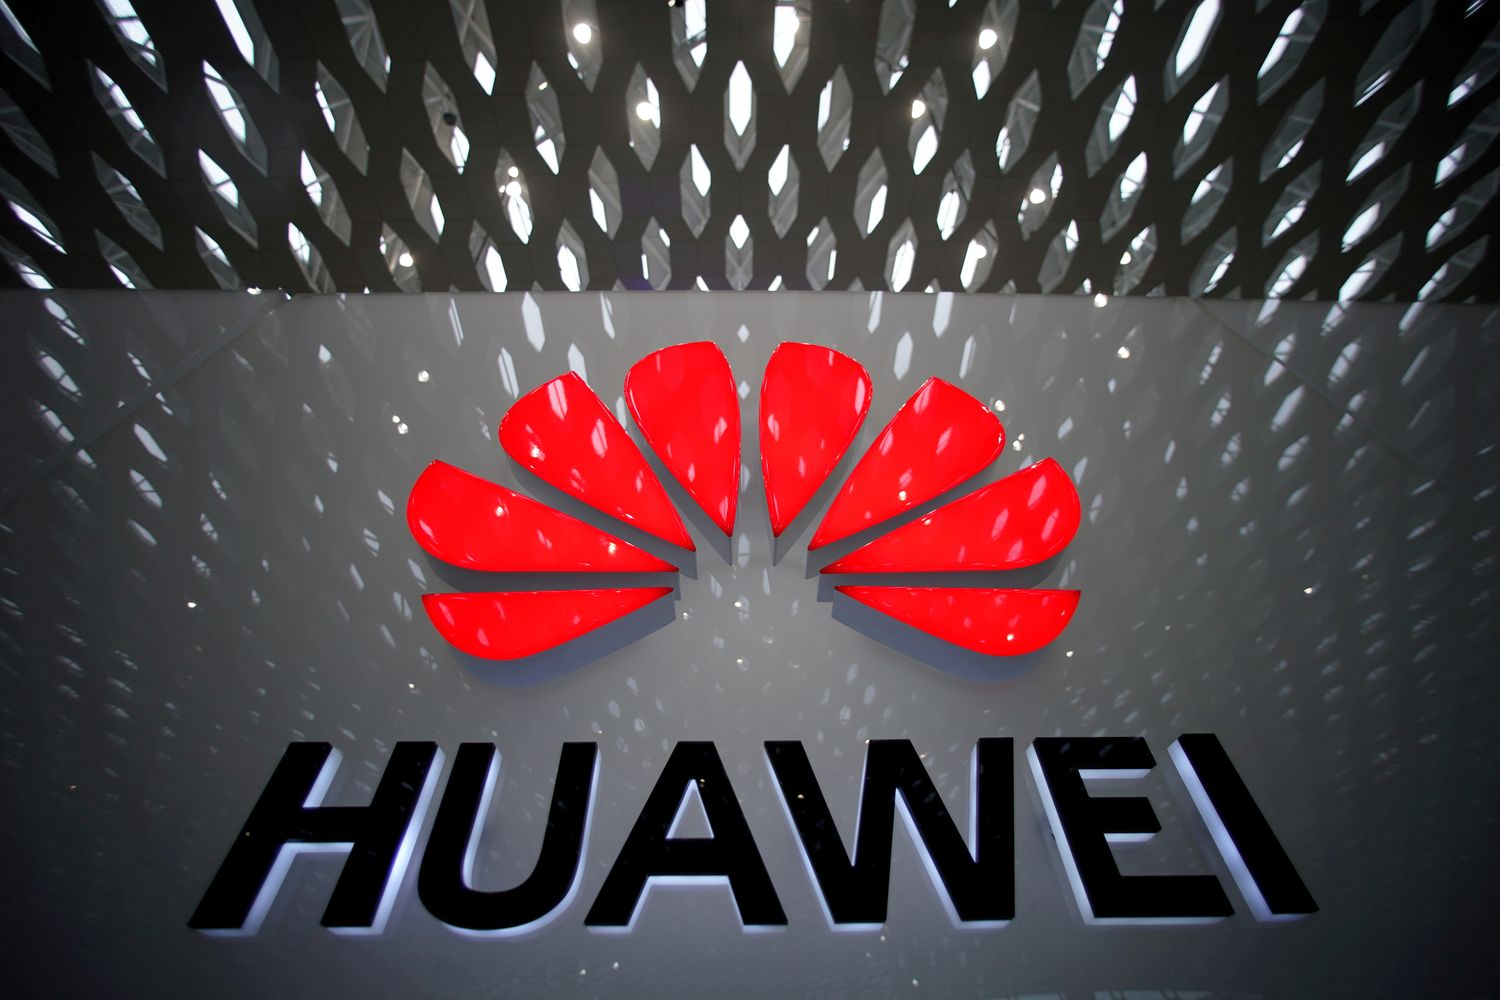 'I don't want to do business with Huawei'